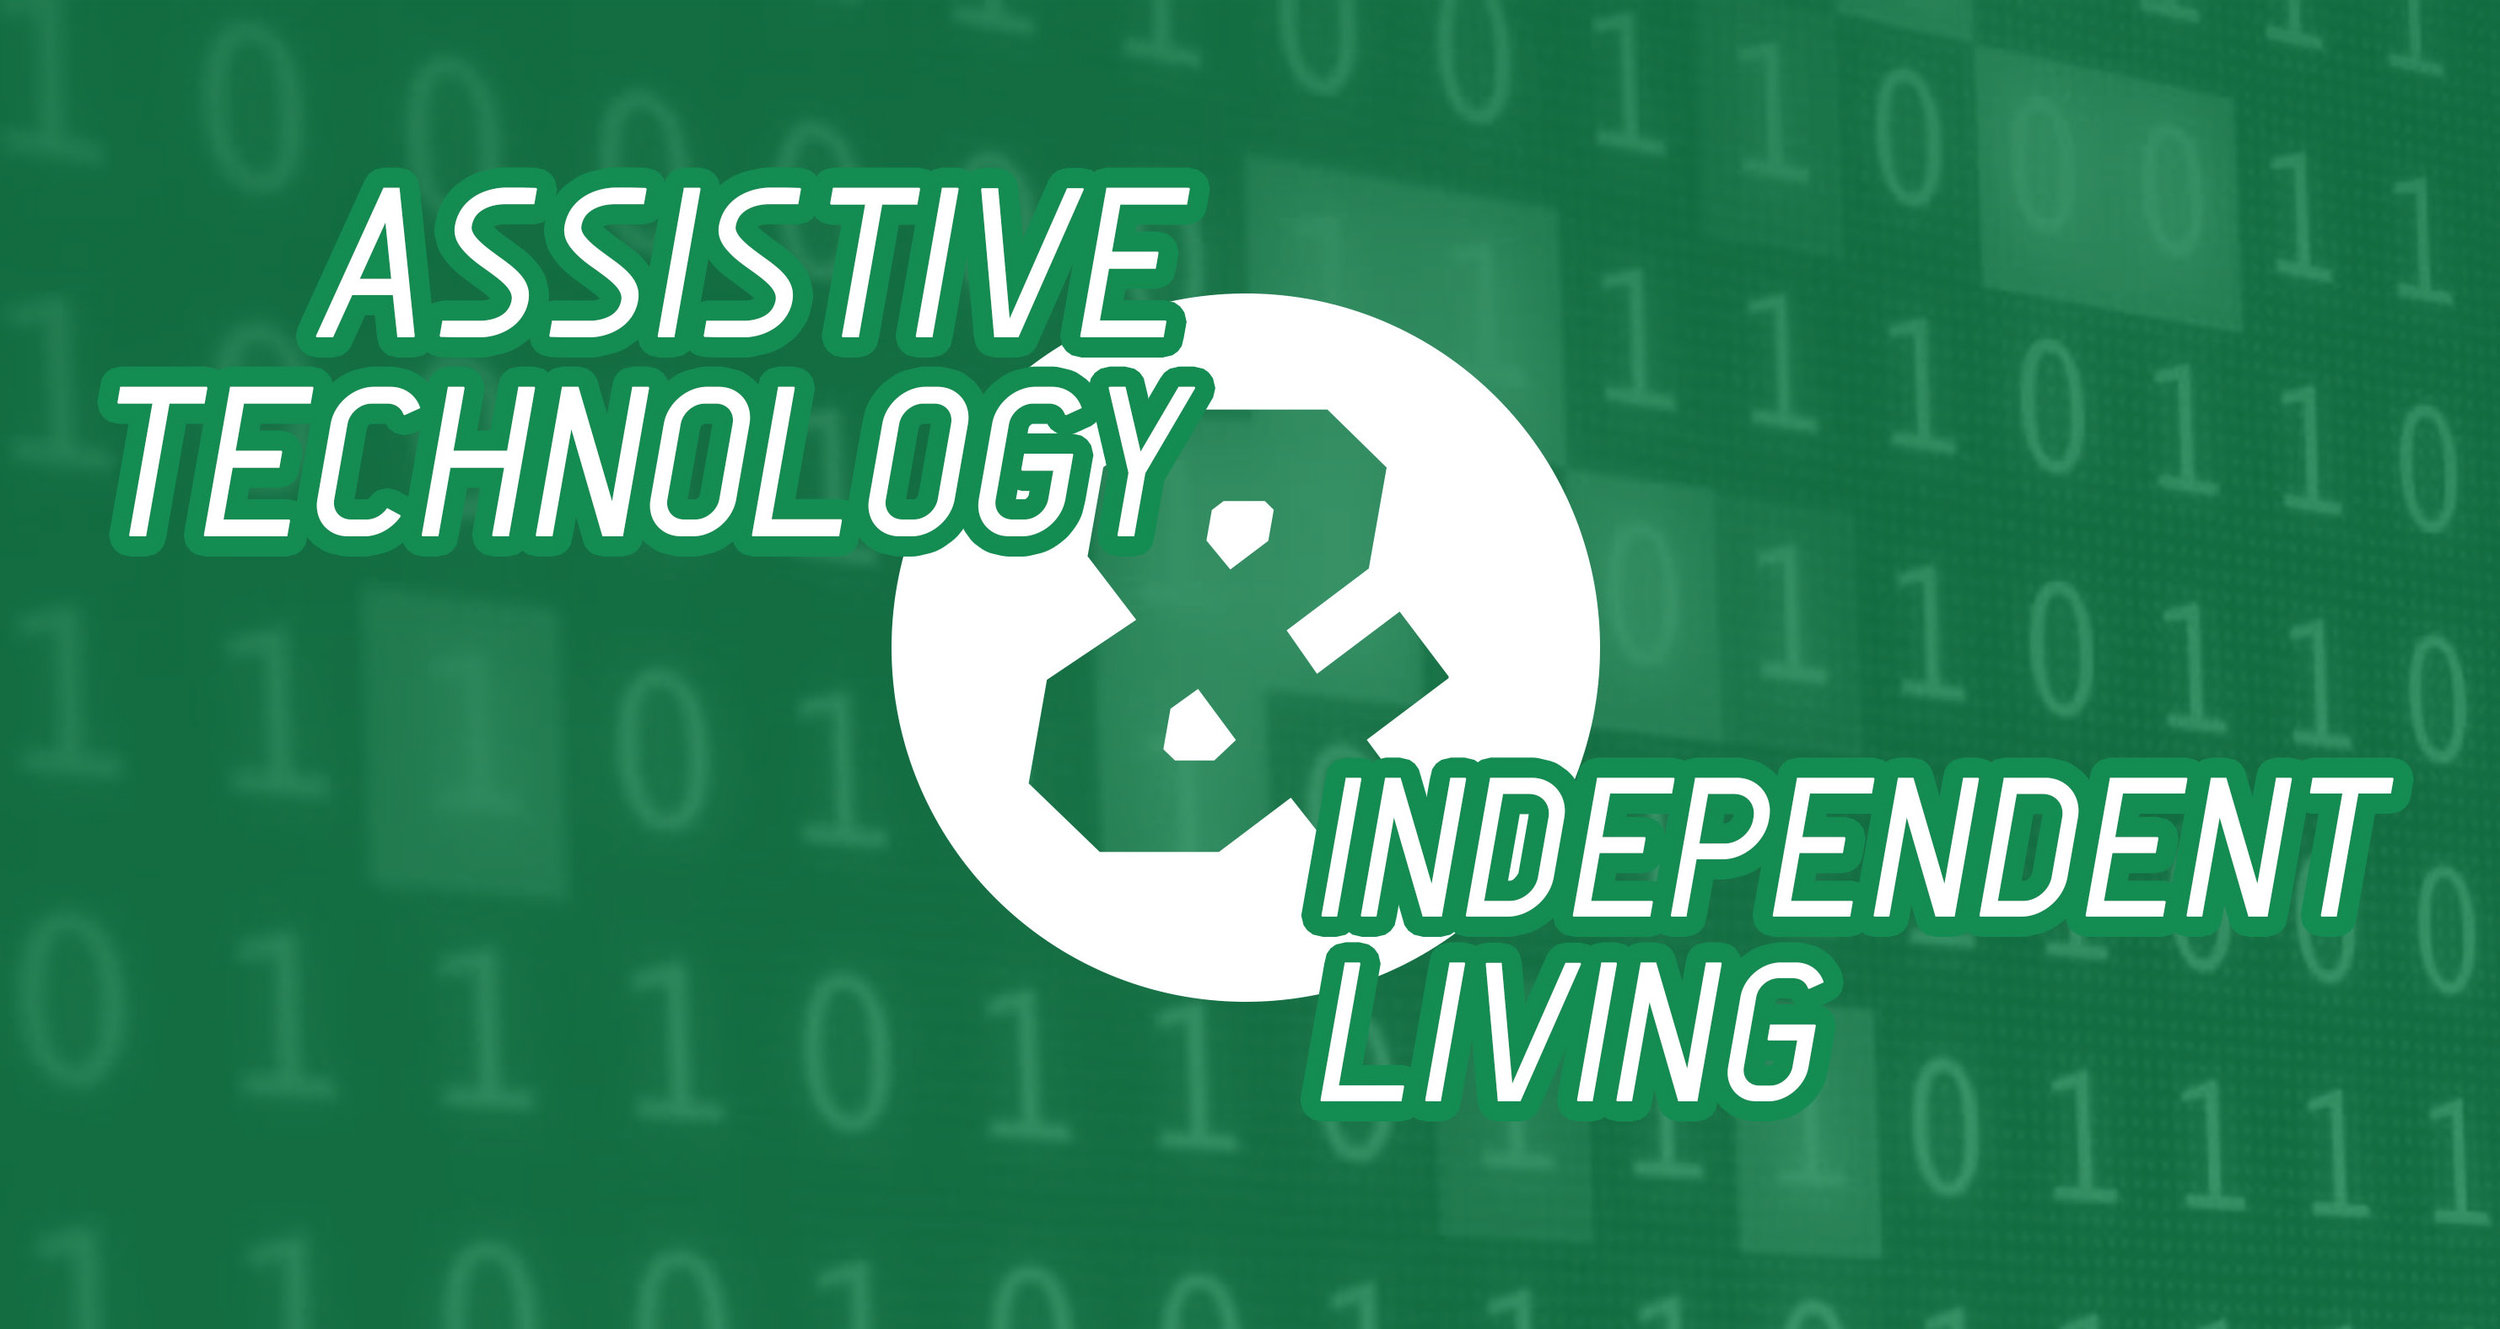 Assistive Technology and Independent Living.jpg